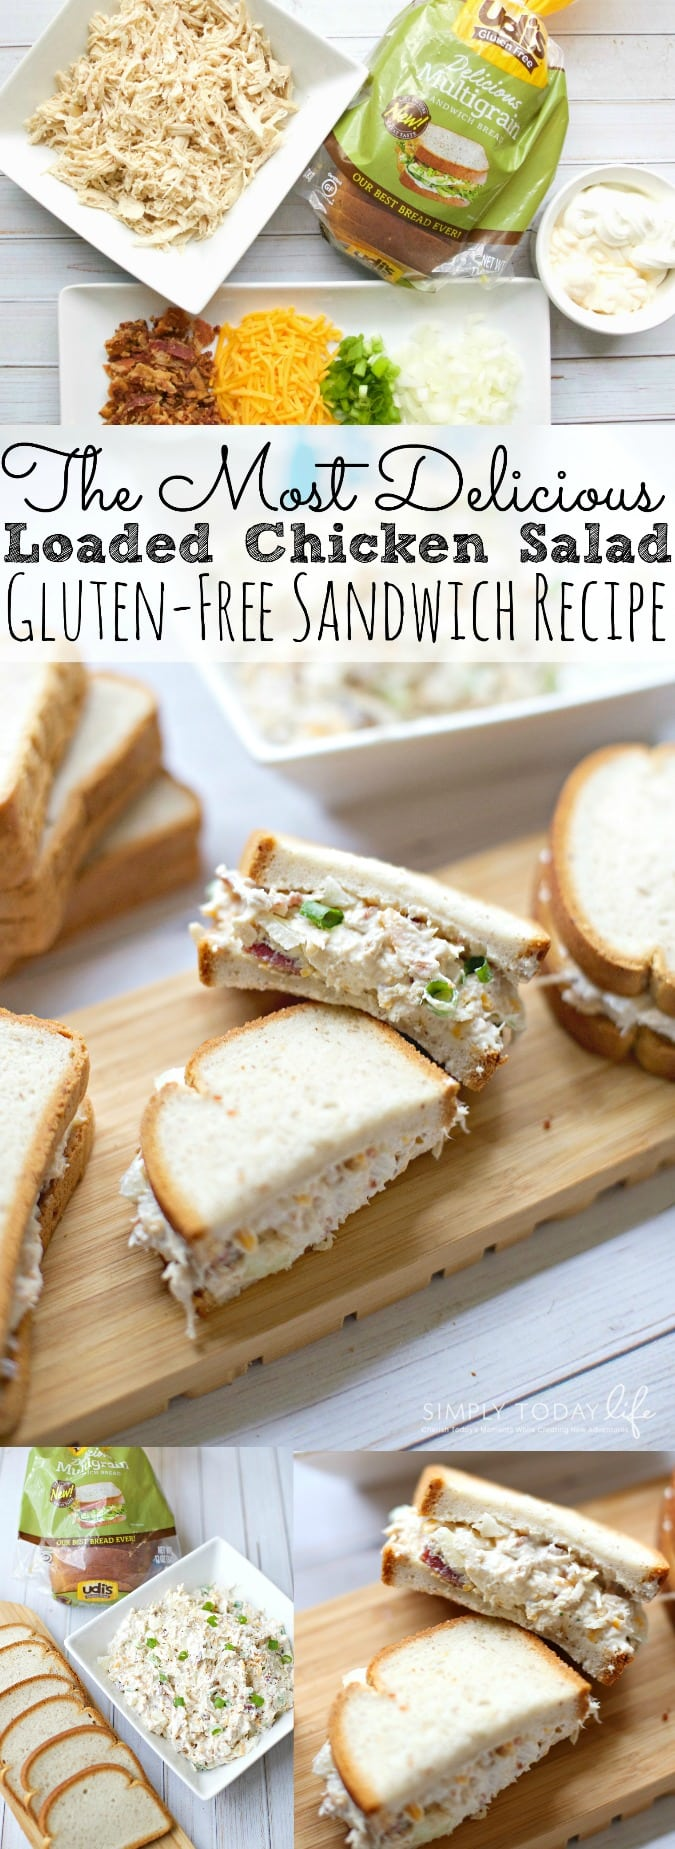 The Most Delicious Loaded Chicken Salad Sandwich